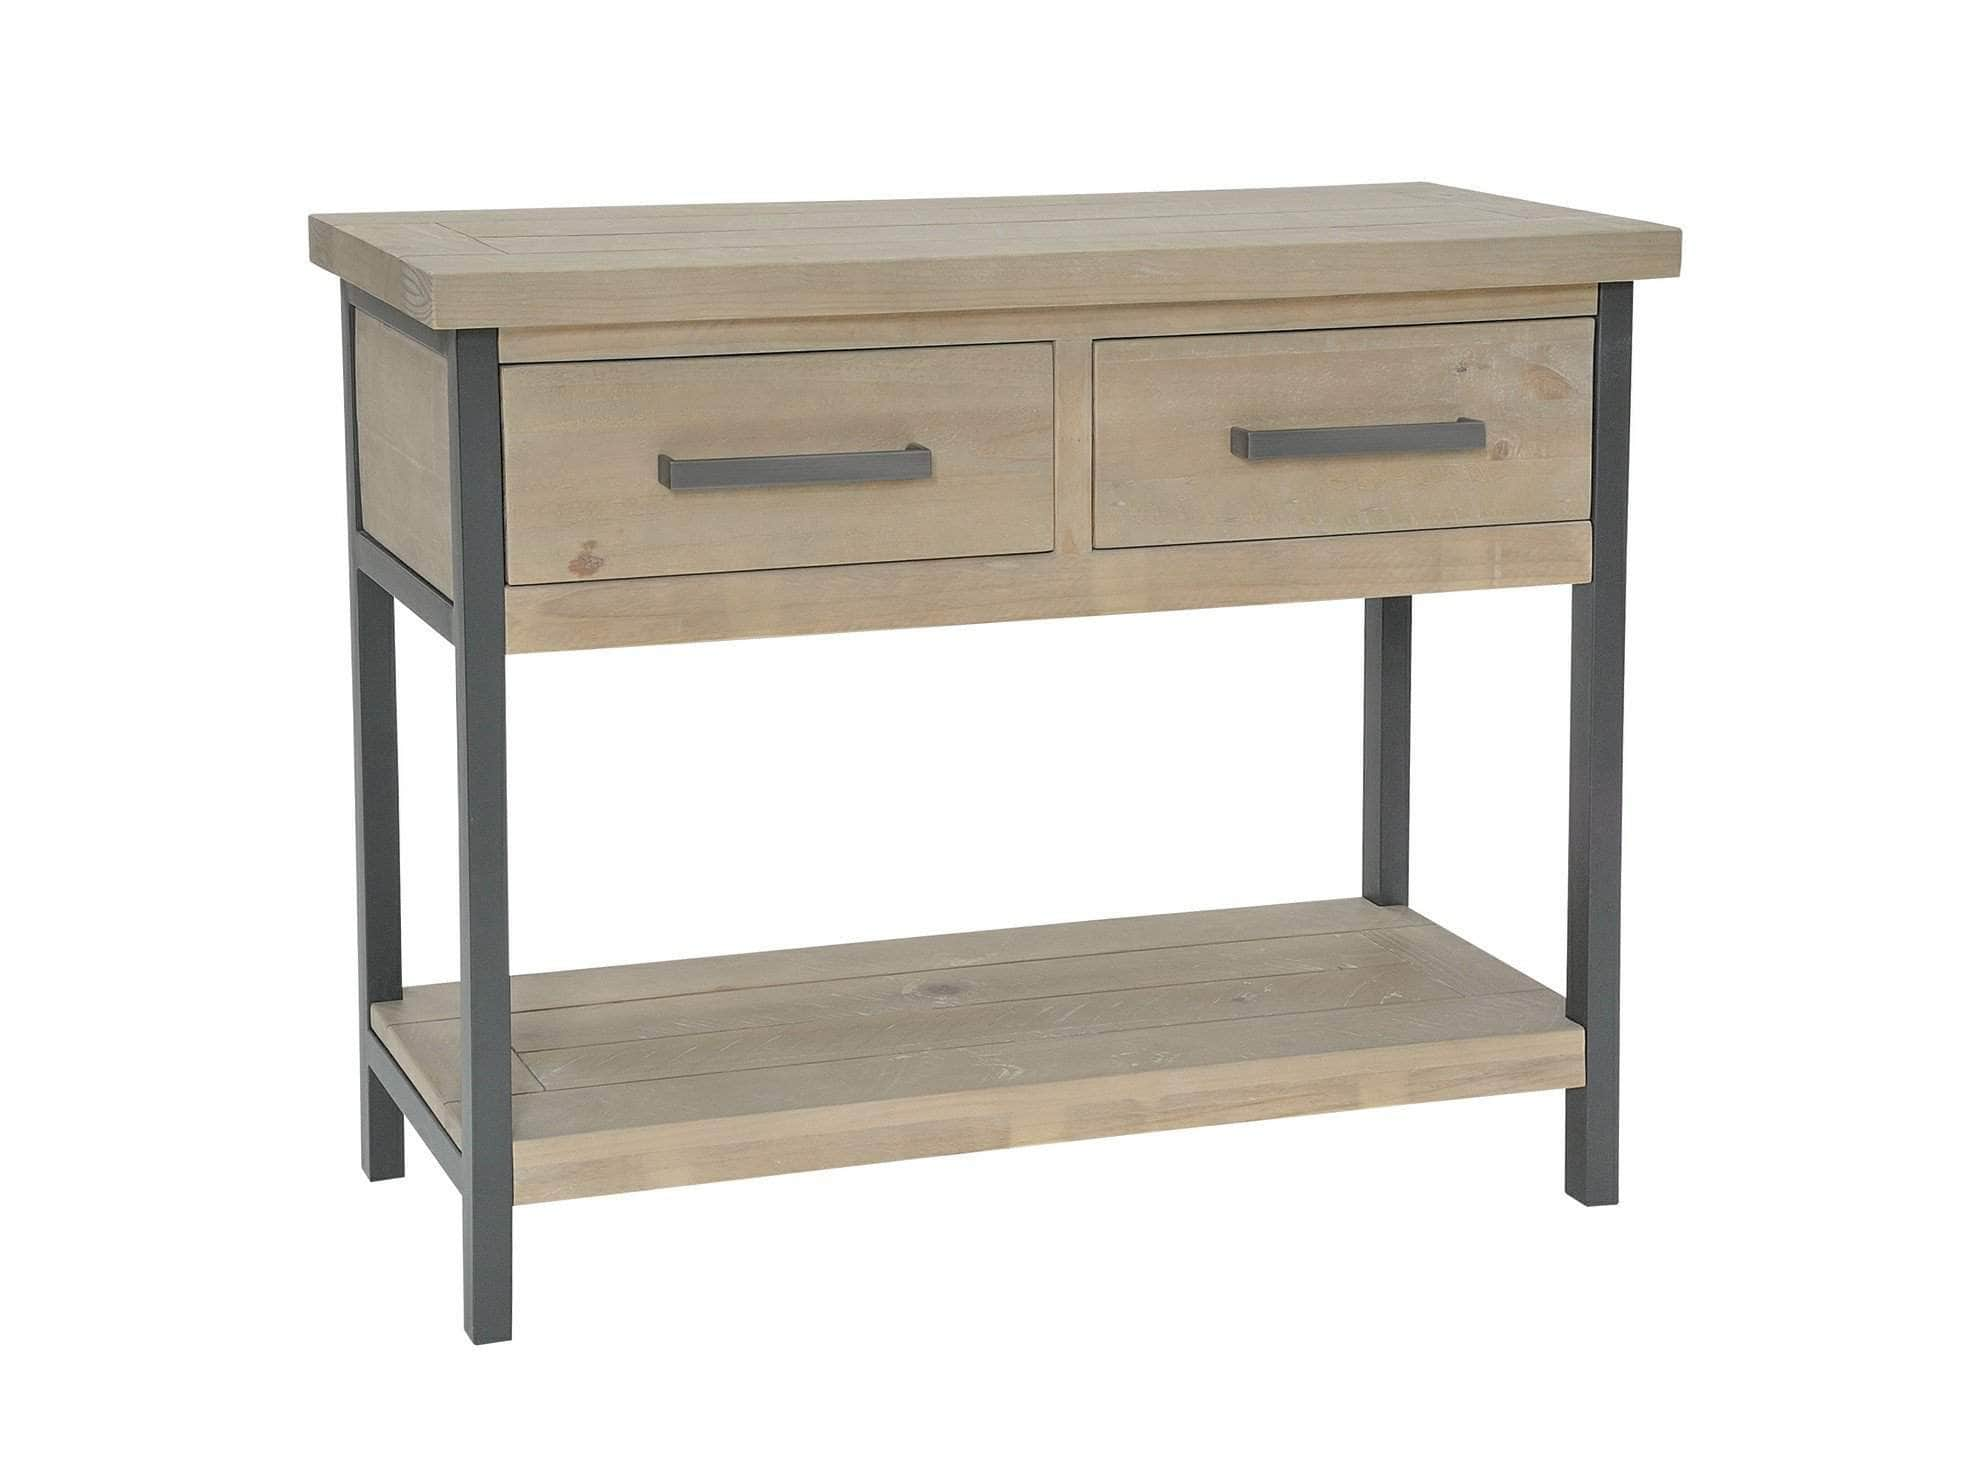 Hallway console table in industrial style, with steel frame and drawer handles